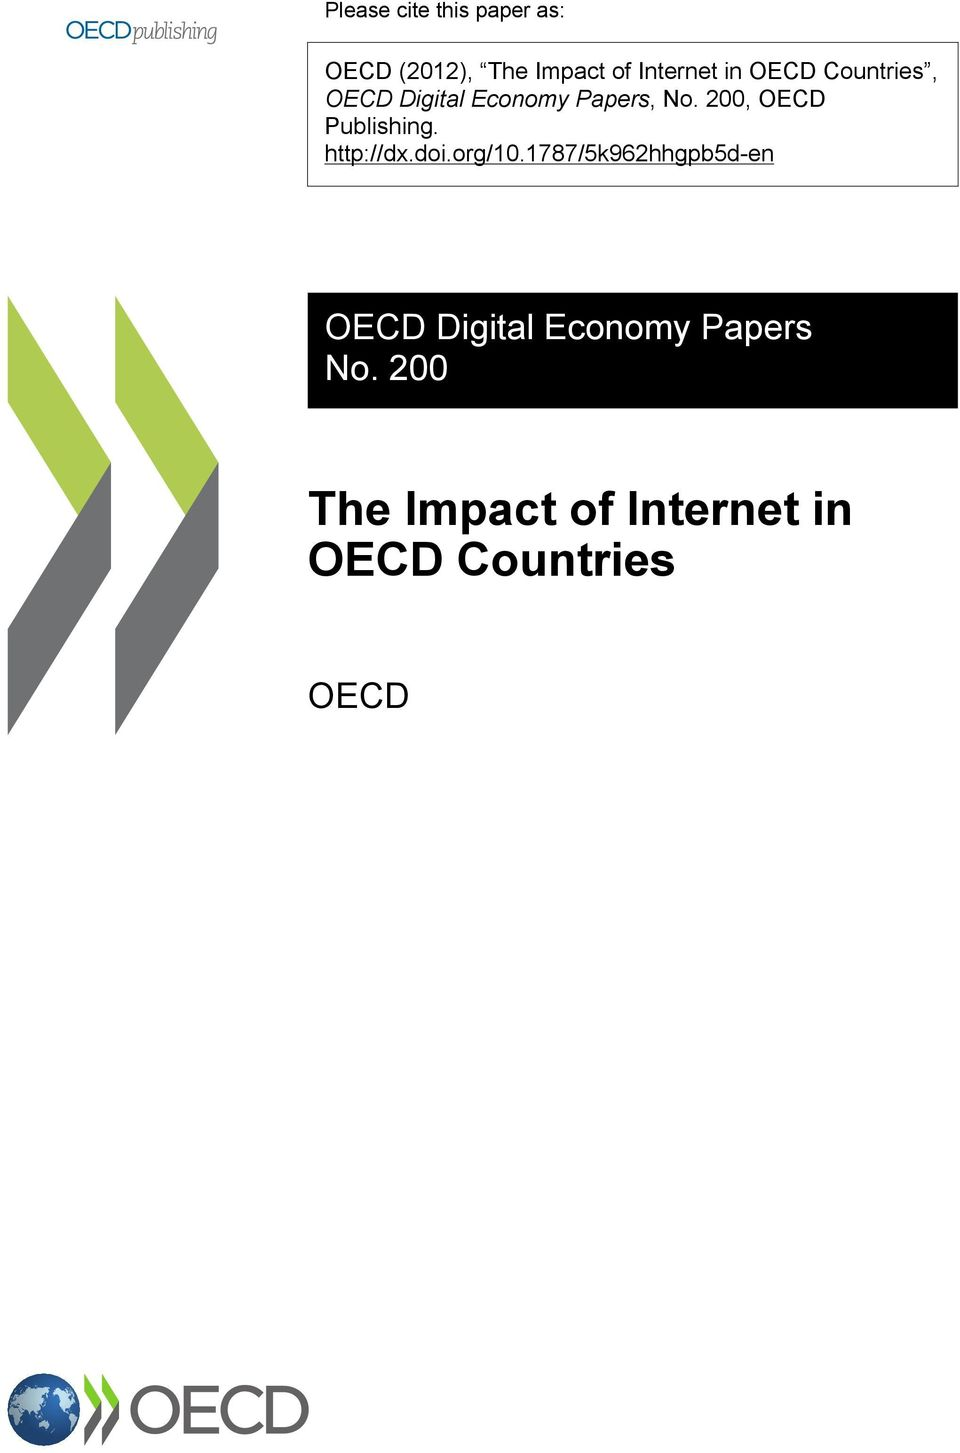 200, OECD Publishing. http://dx.doi.org/10.